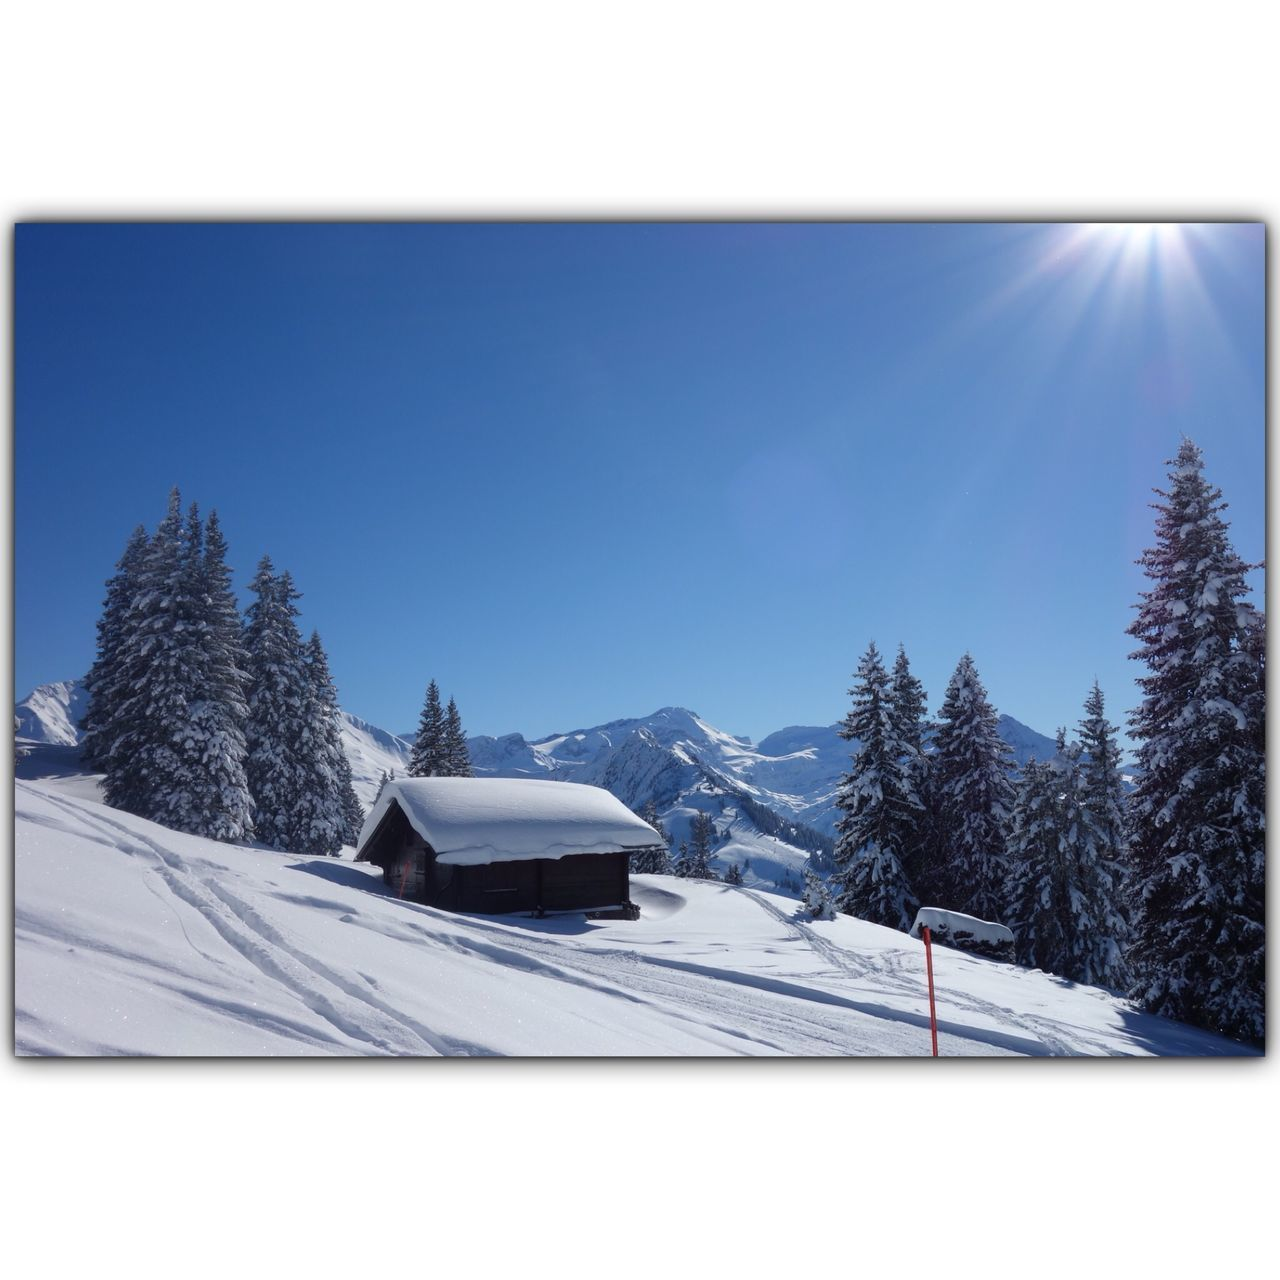 sky, winter, snow, cold temperature, nature, tree, mountain, building exterior, clear sky, architecture, landscape, house, built structure, building, environment, sunlight, no people, day, beauty in nature, cottage, outdoors, snowcapped mountain